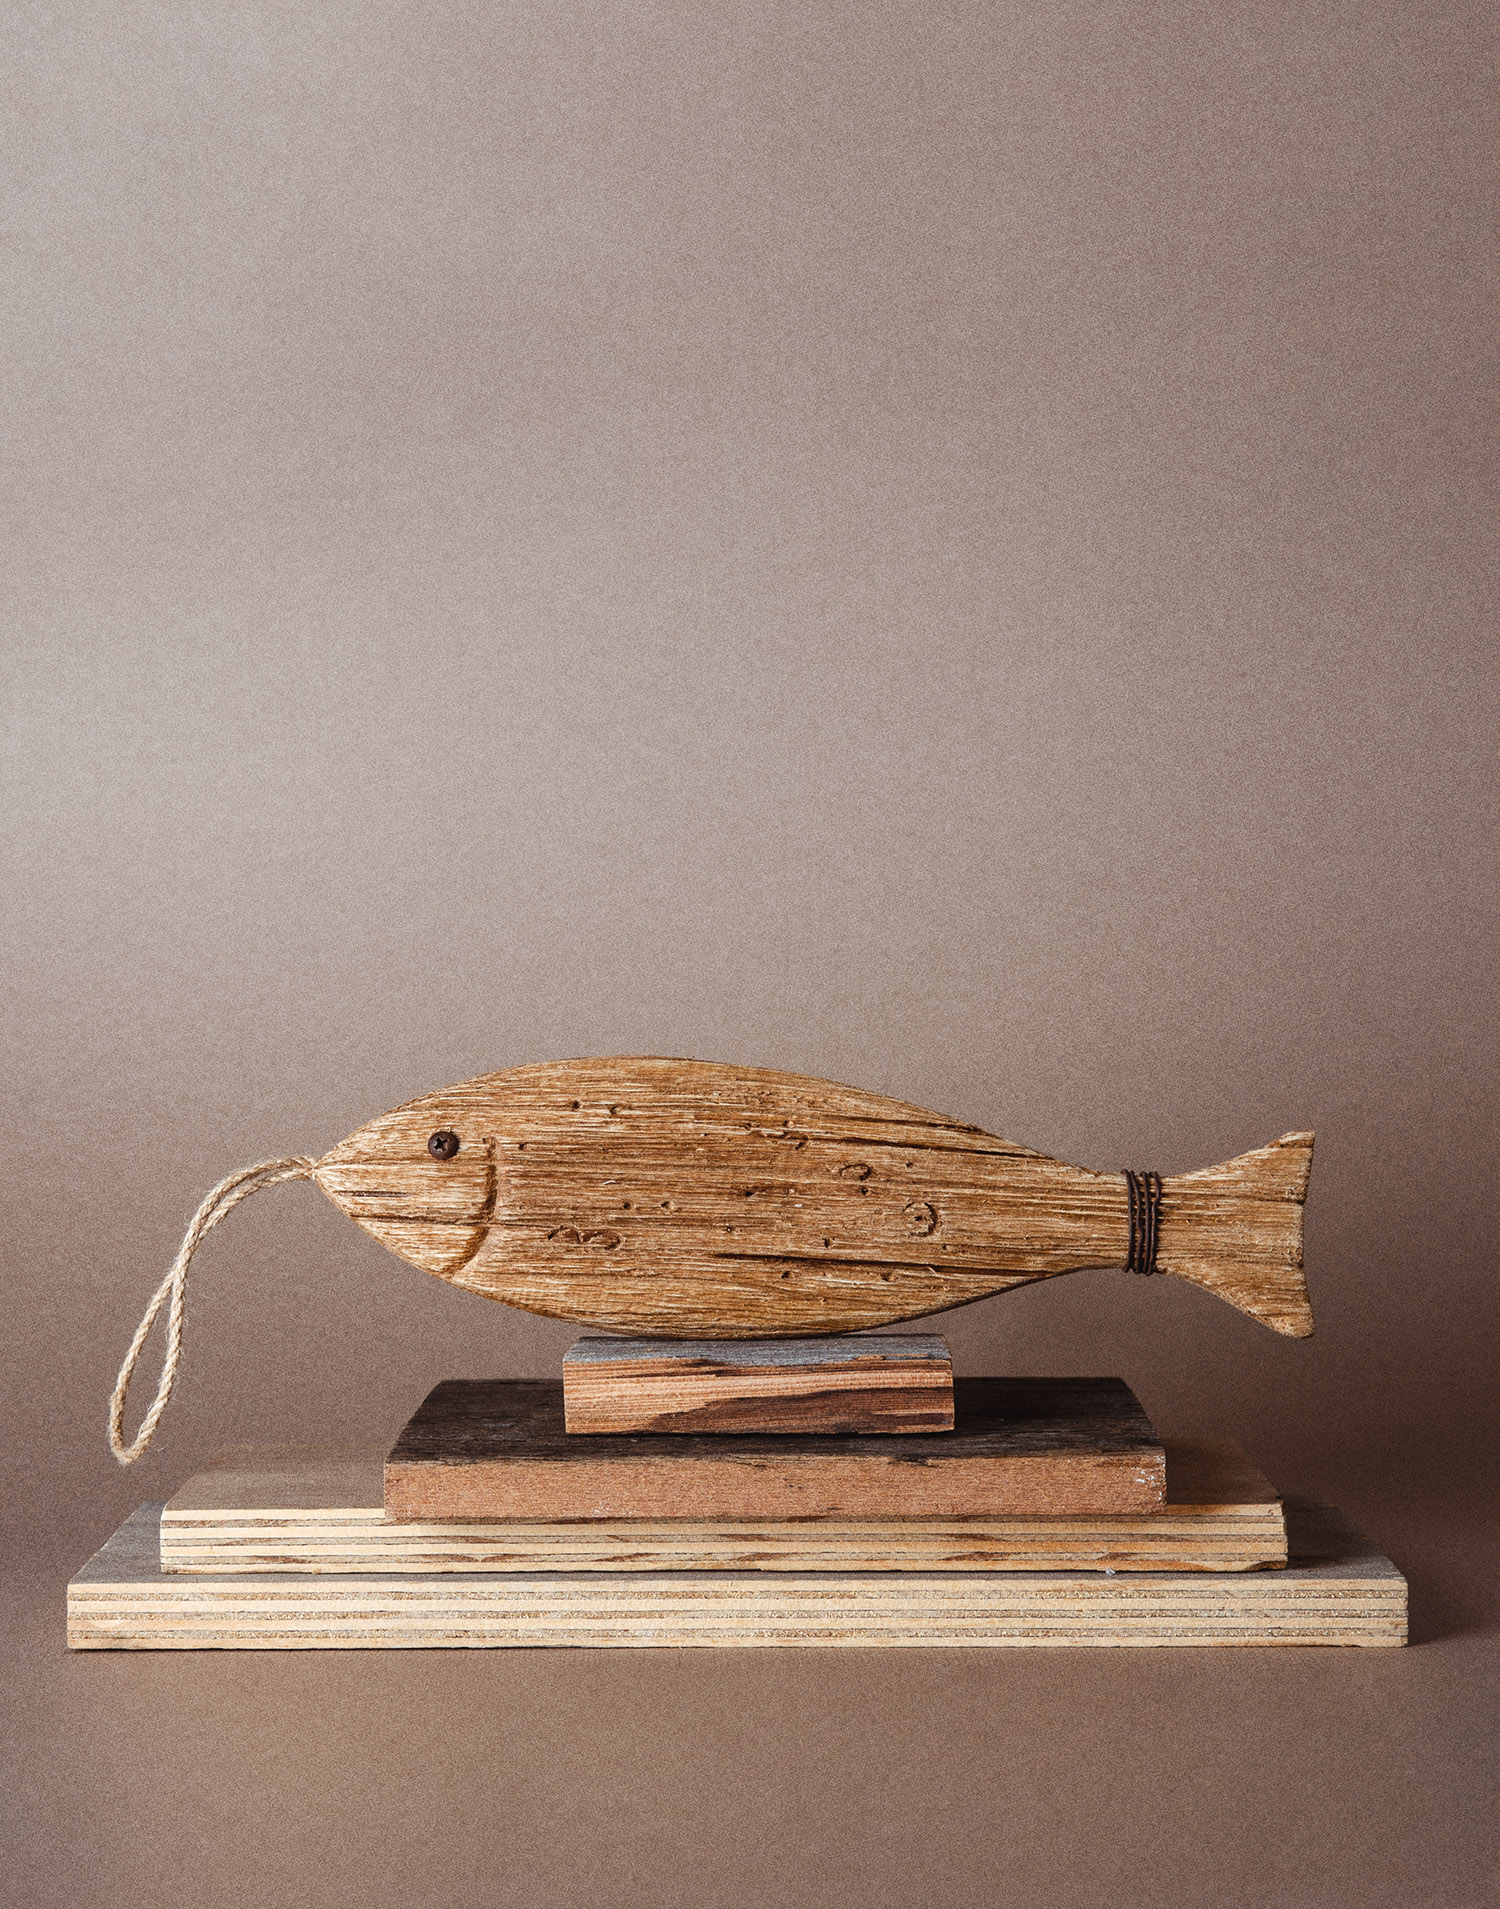 Fish with rope